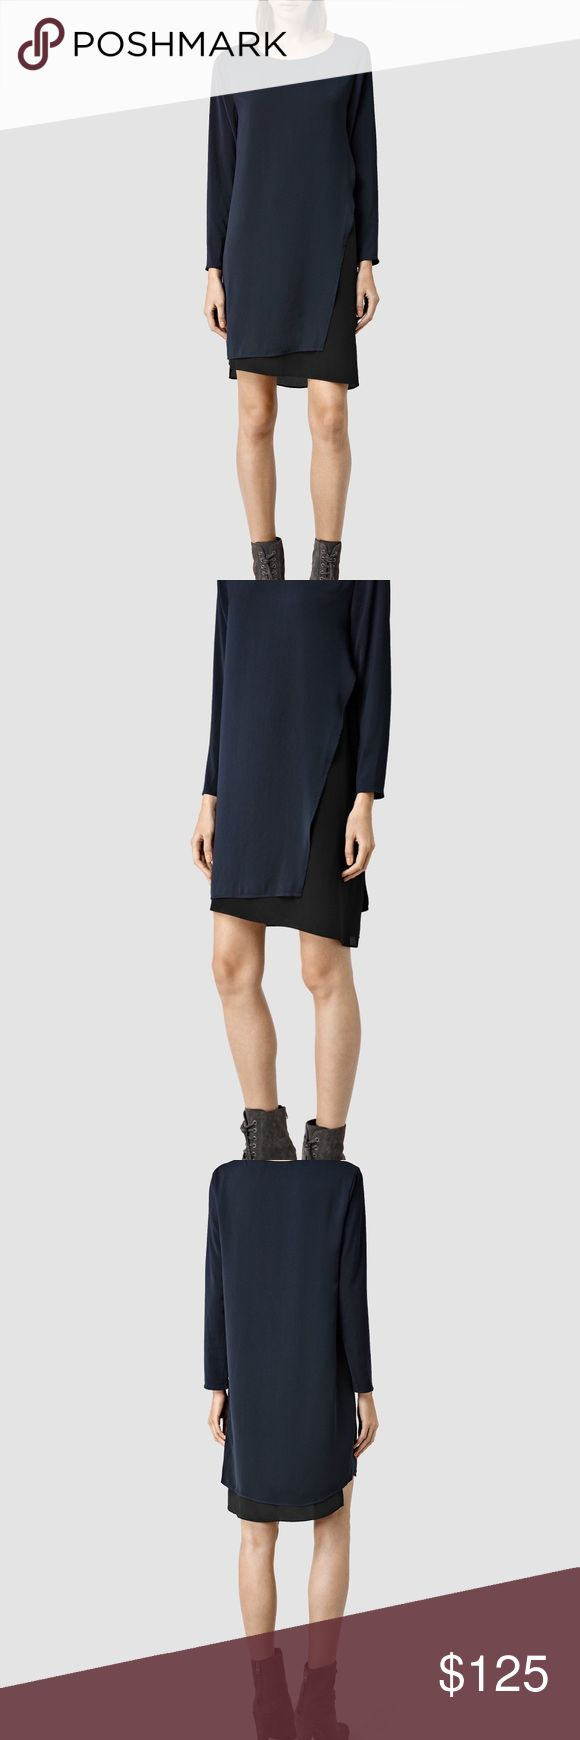 AllSaints Dress AllSaints Roder Dress Feels like butter on Sleeves are silk and have no give  Outer: 100% Polyester Inner: 55% Viscose, 45% Silk All Saints Dresses Midi